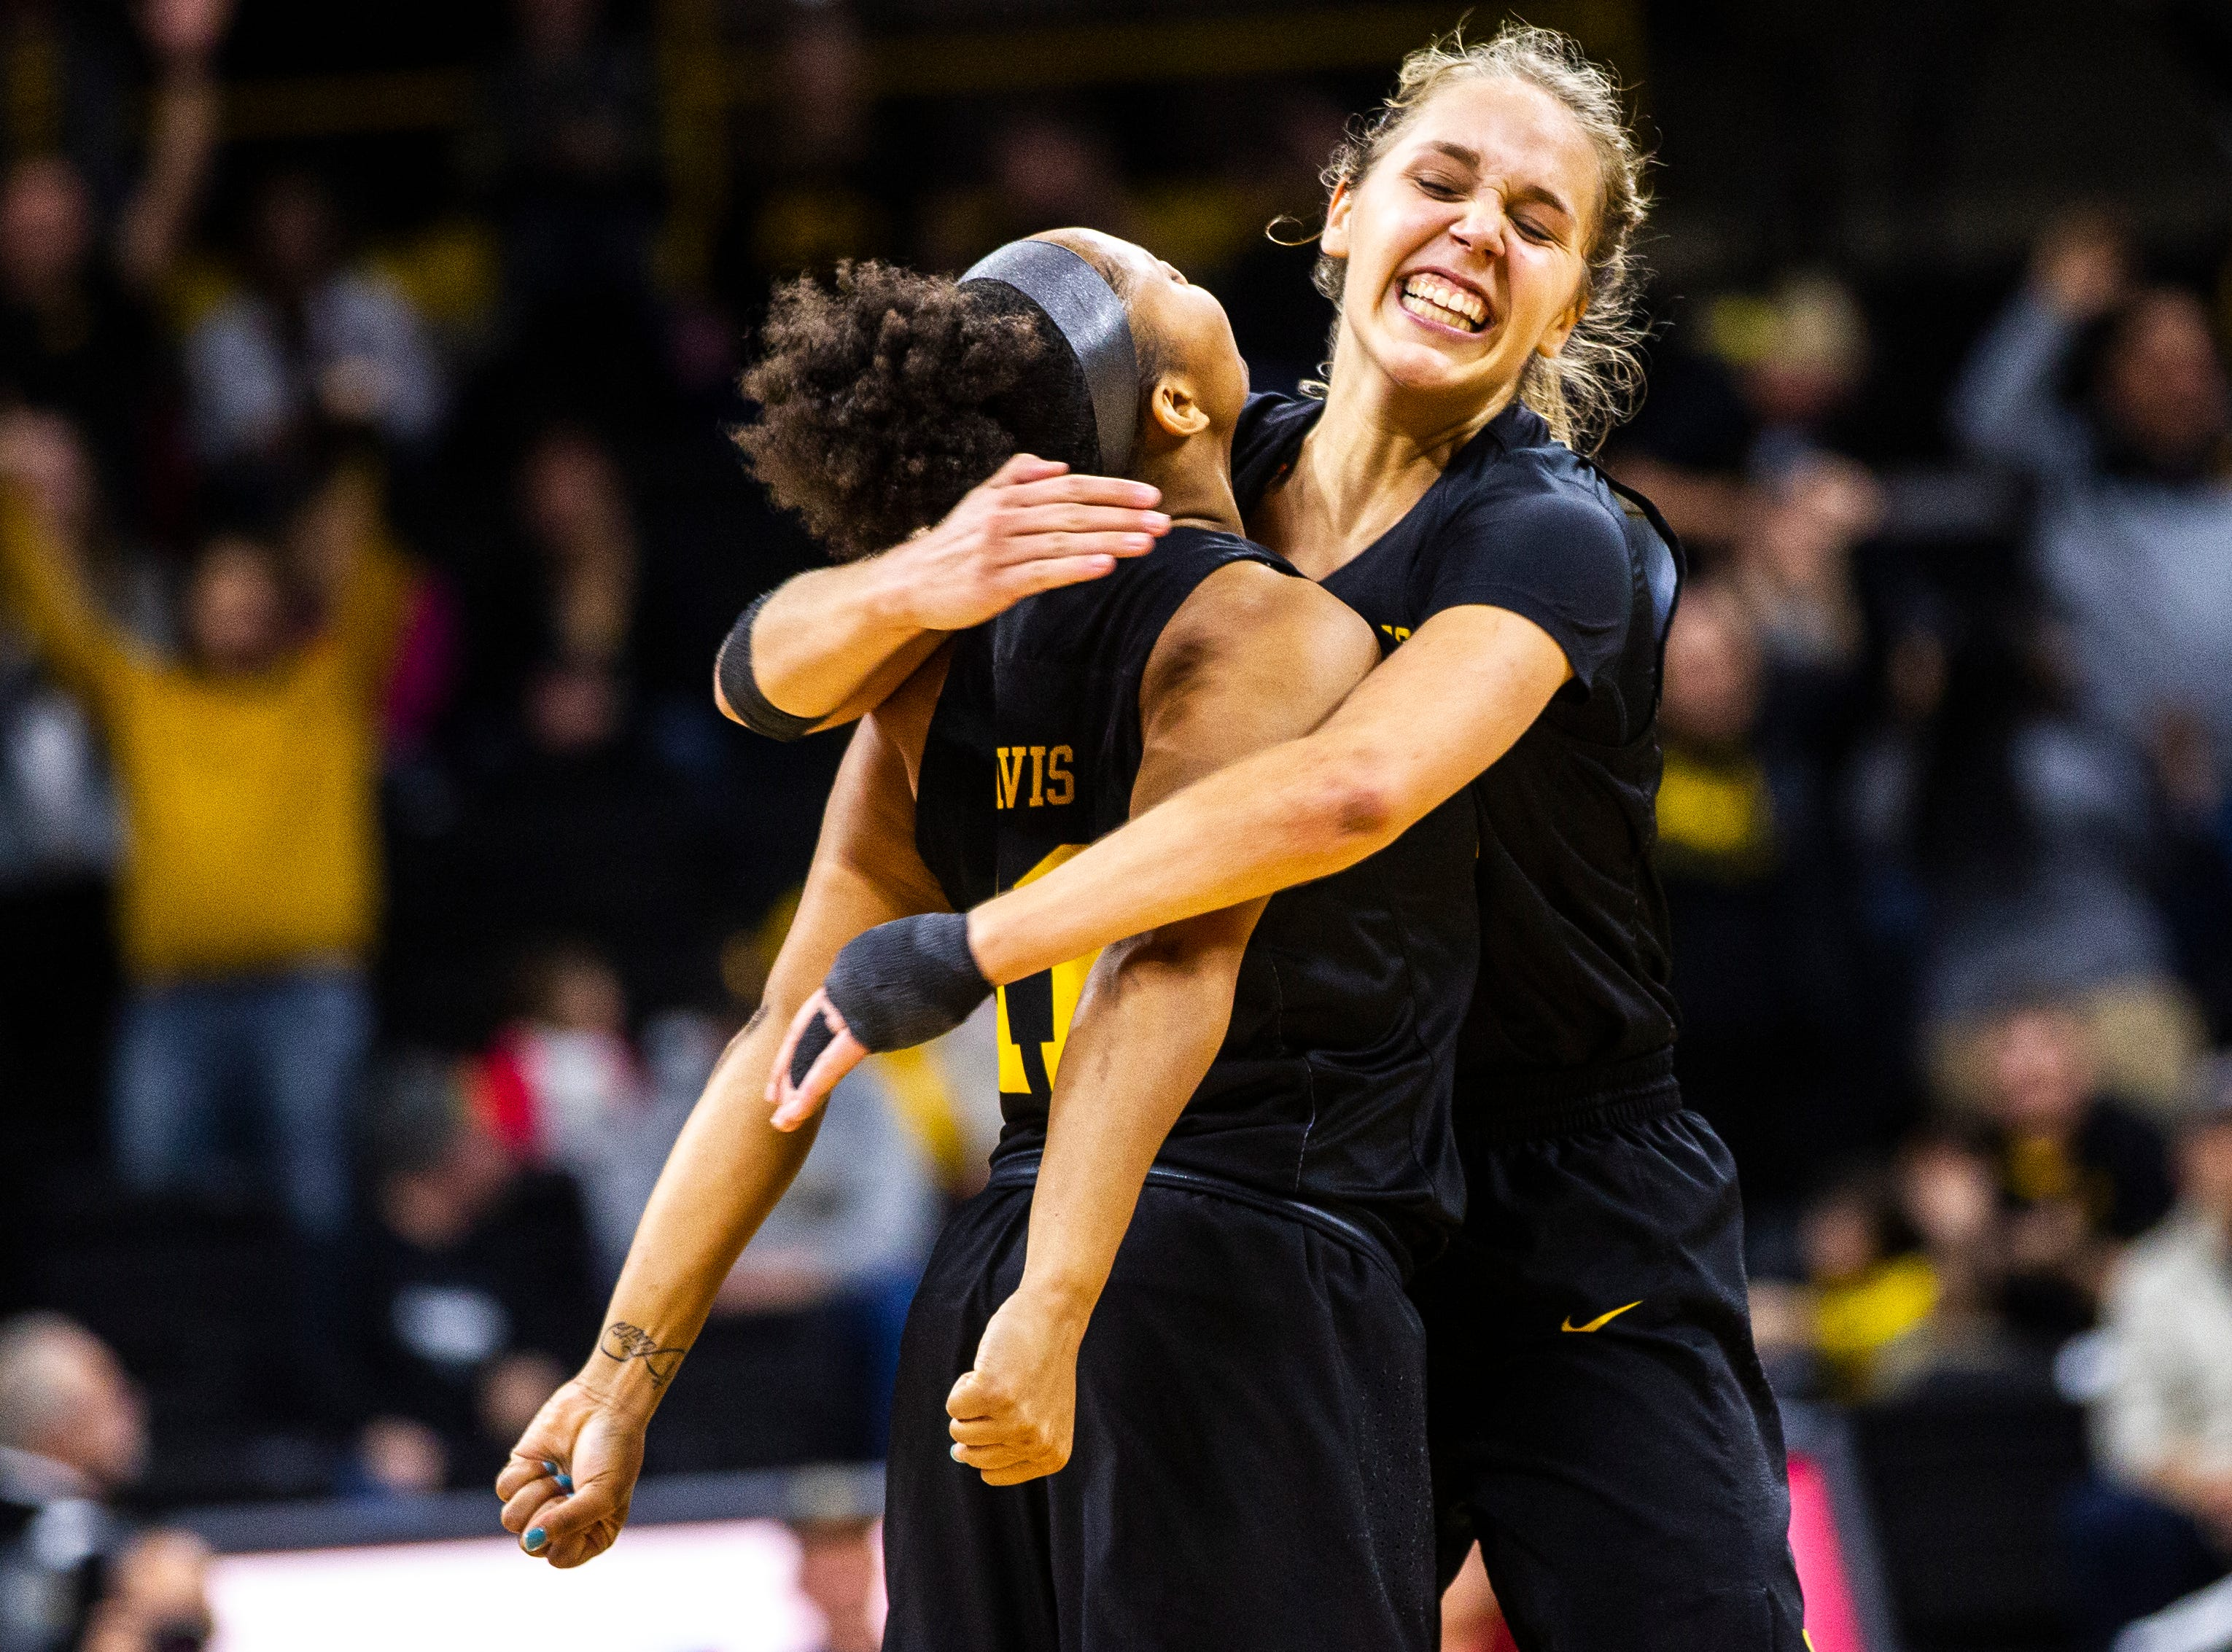 Cy-Hawk women's basketball: Tania Davis' game-winner lifts Hawkeyes to thrilling win over Iowa State